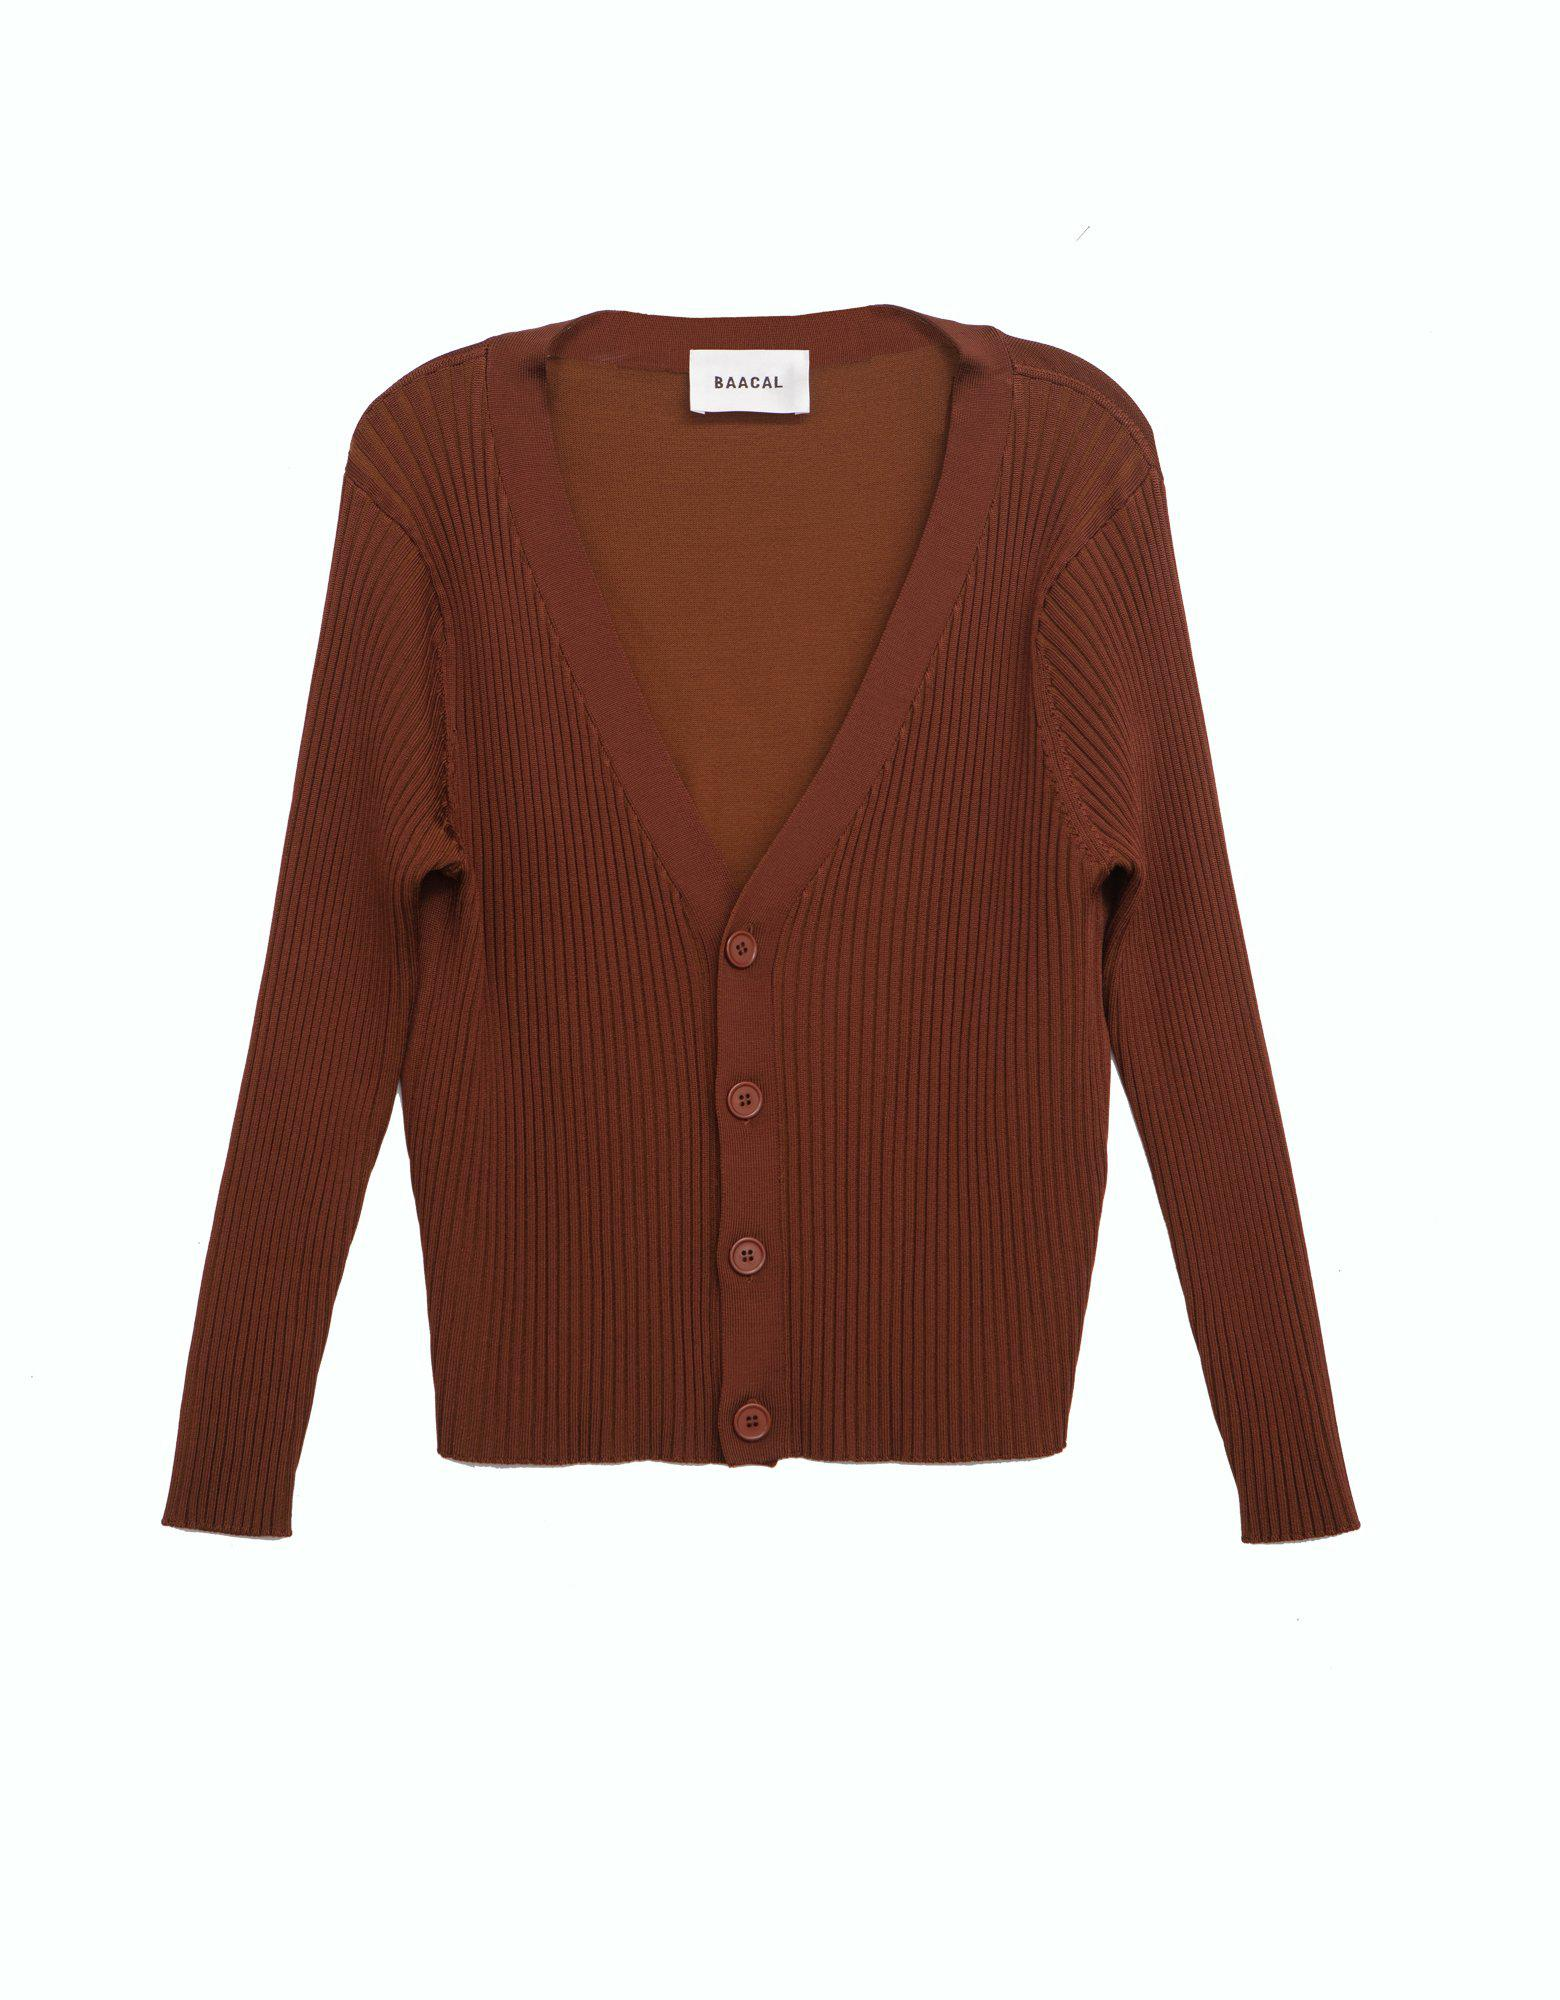 V-Neck Cardigan in Coffee Brown